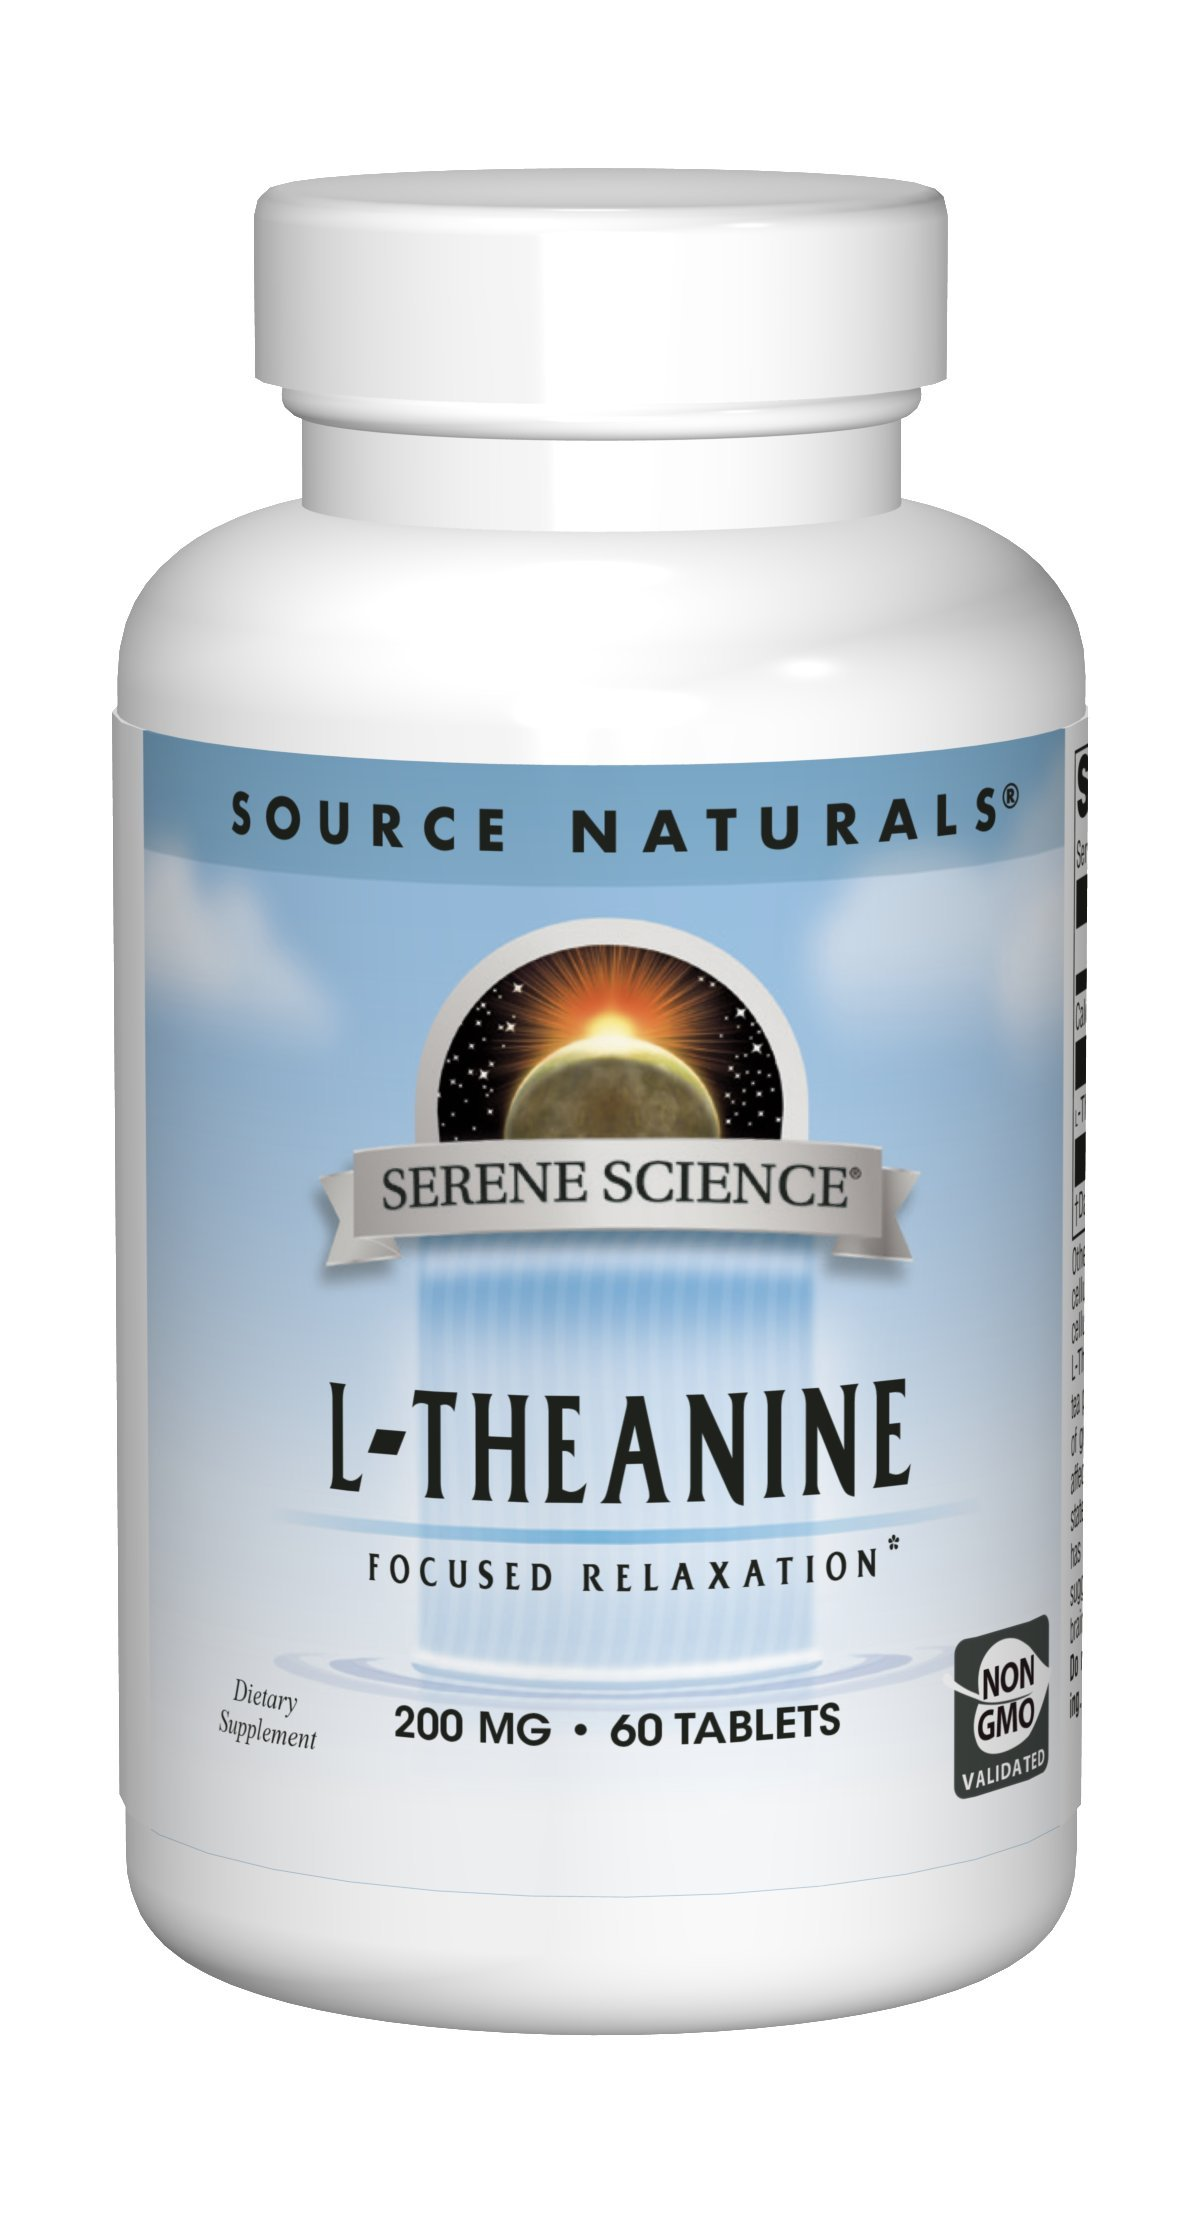 Source Naturals Serene Science L-Theanine 200mg Anti-Anxiety Supplement - 60 Capsules